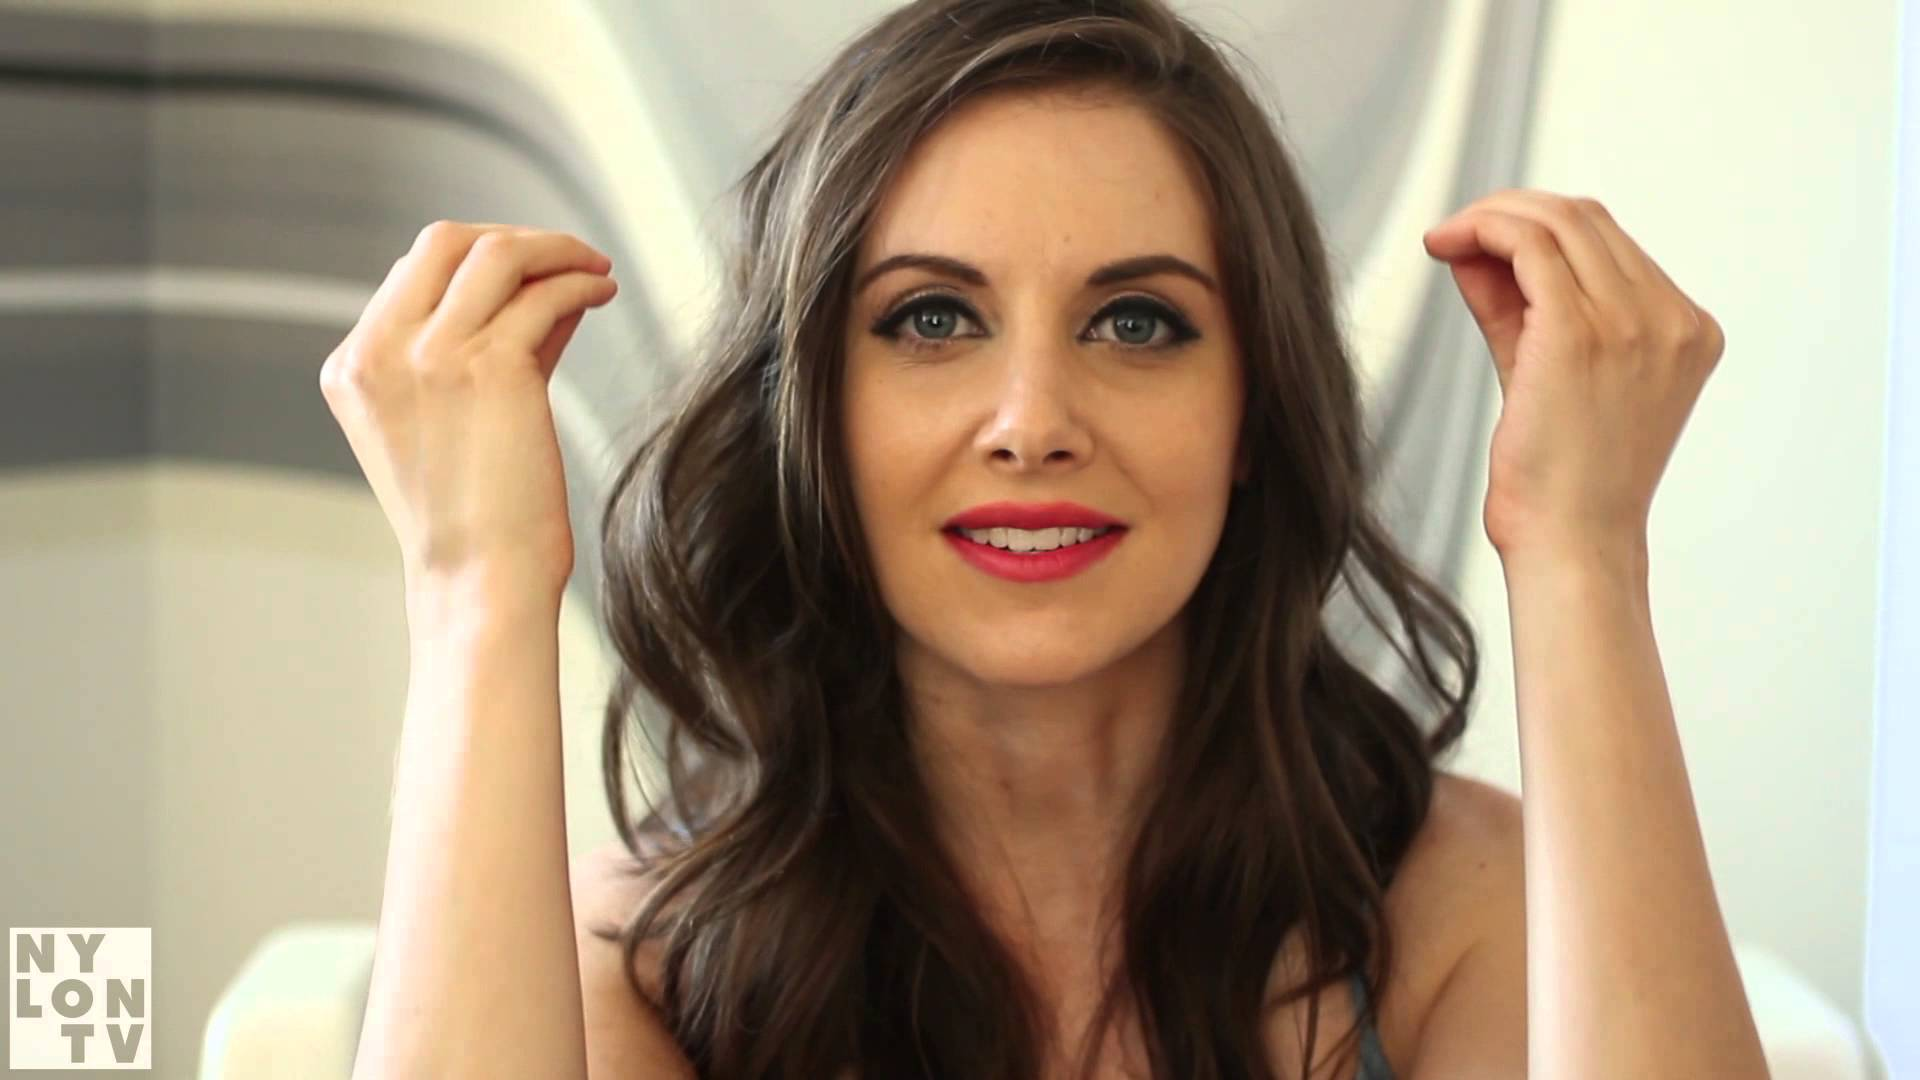 1920x1080 - Alison Brie Wallpapers 20